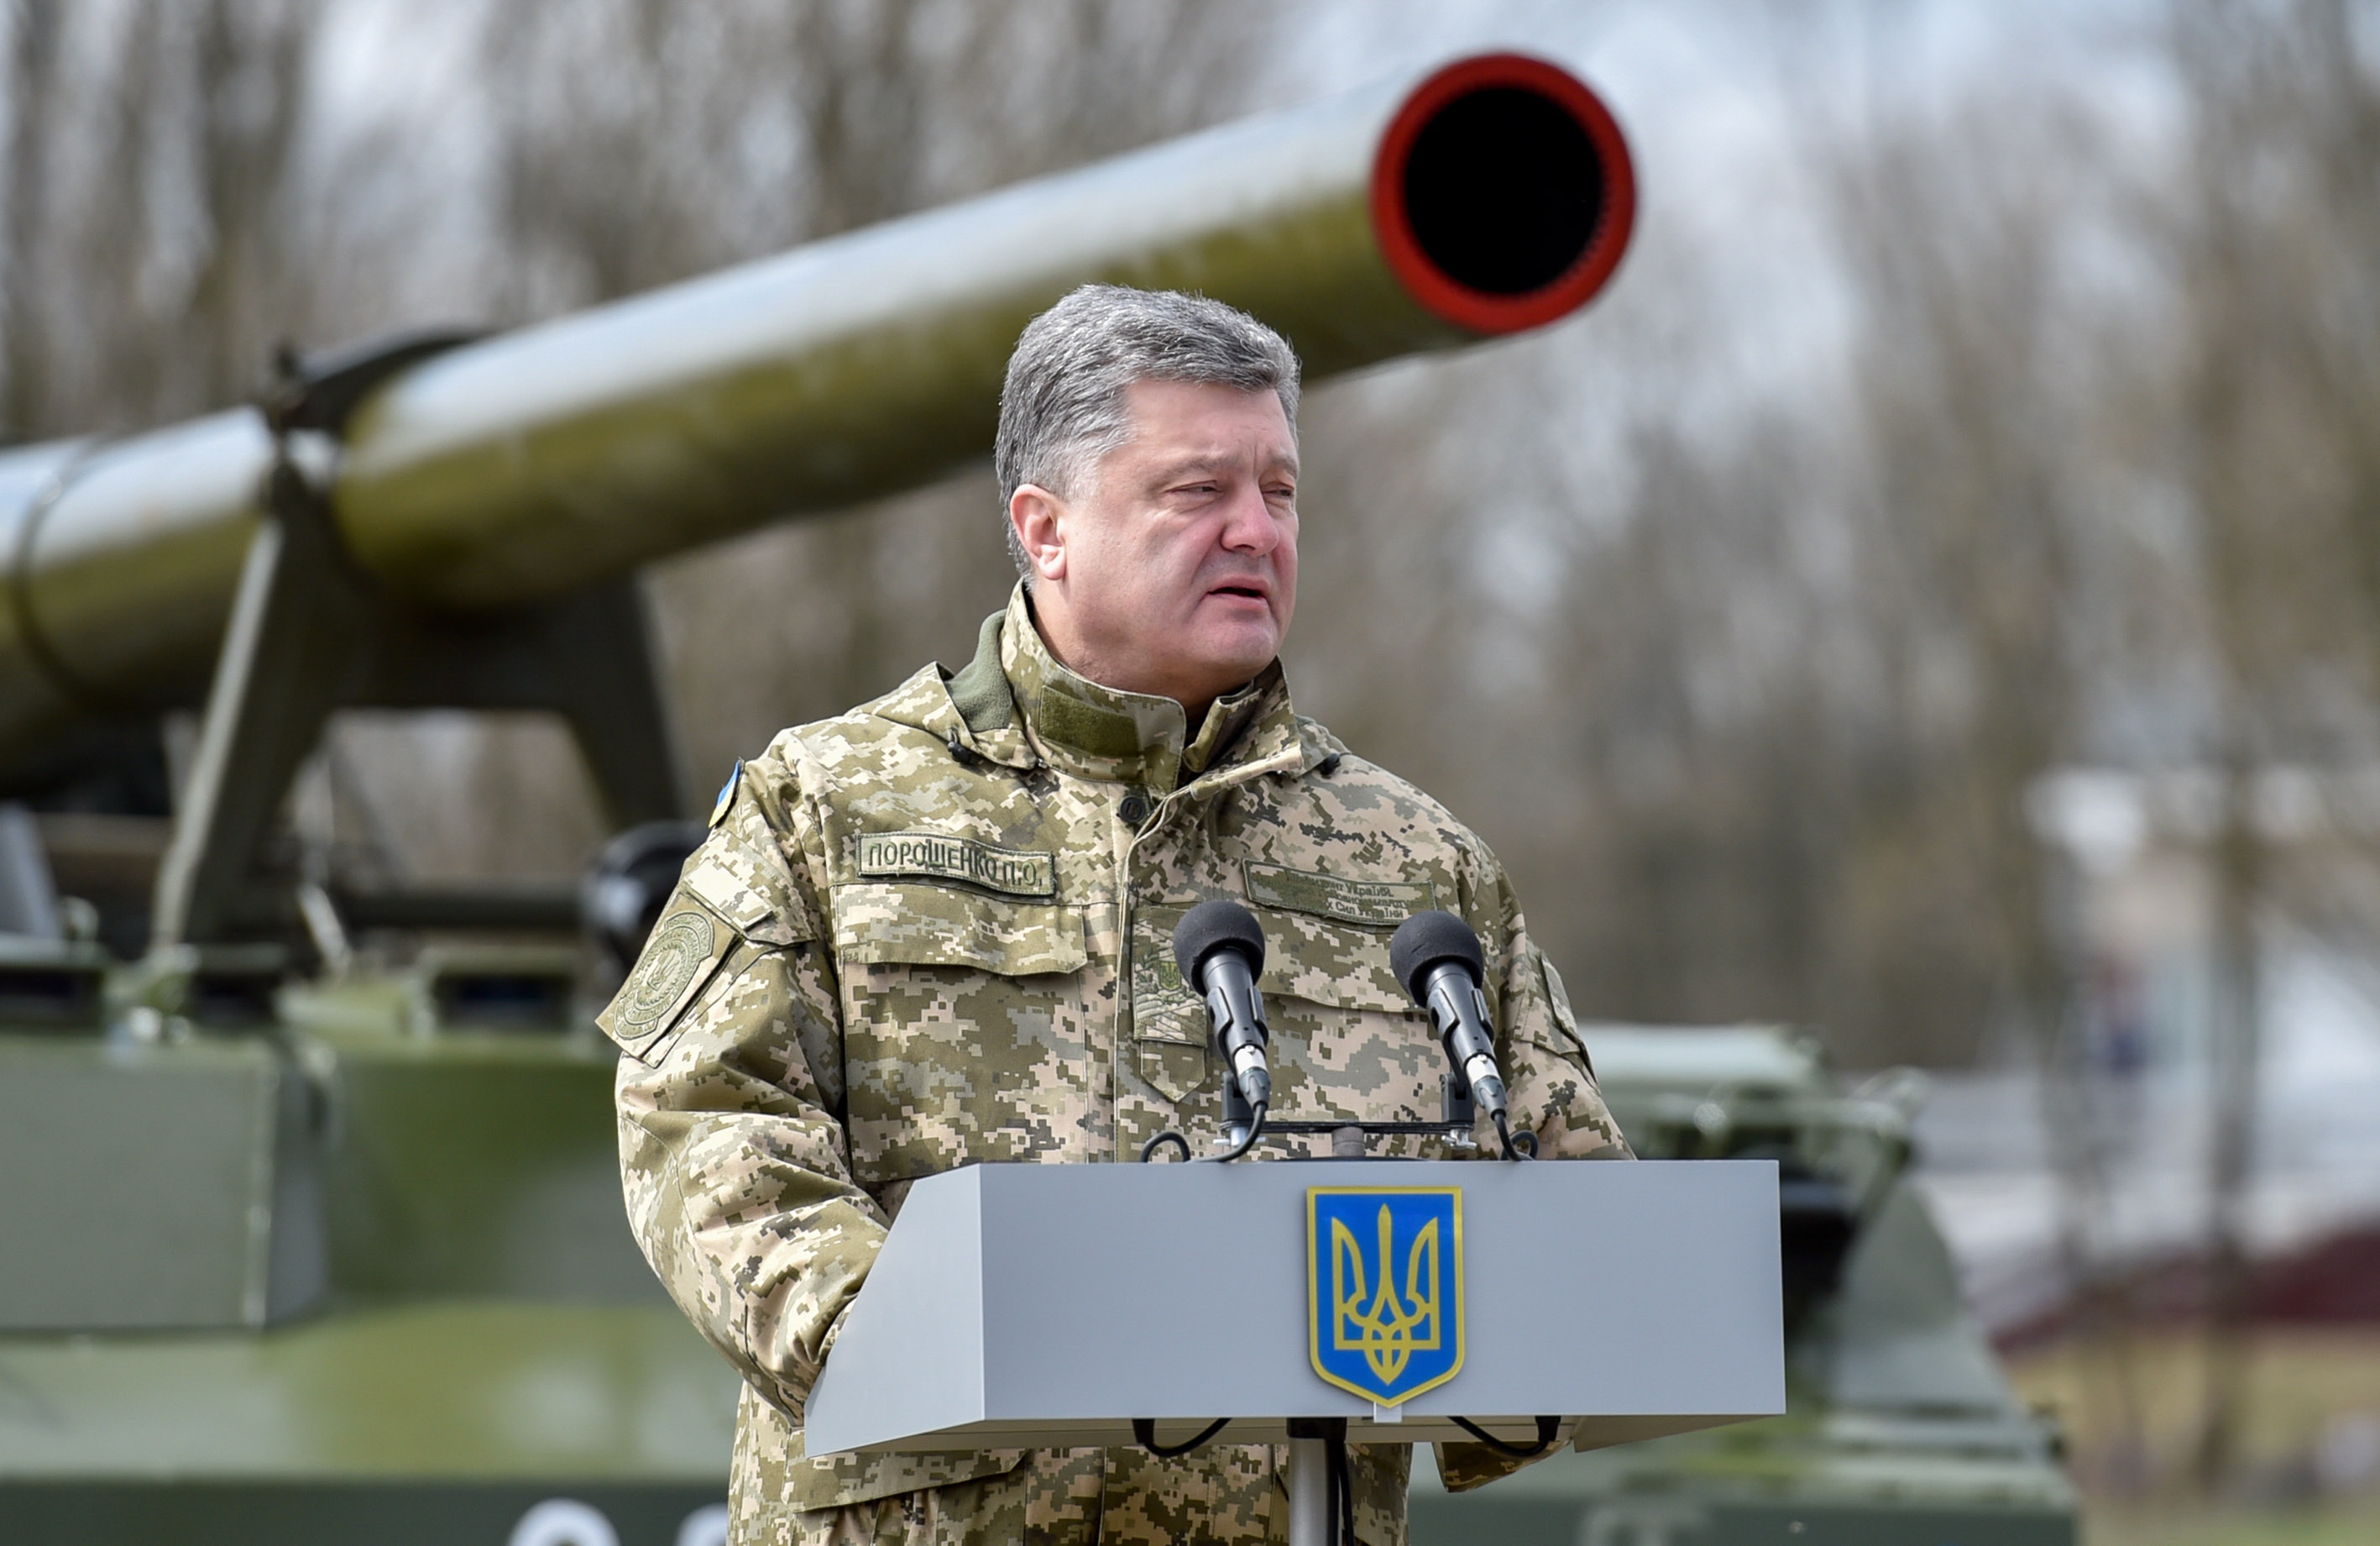 President Poroshenko examined samples of modern weaponry